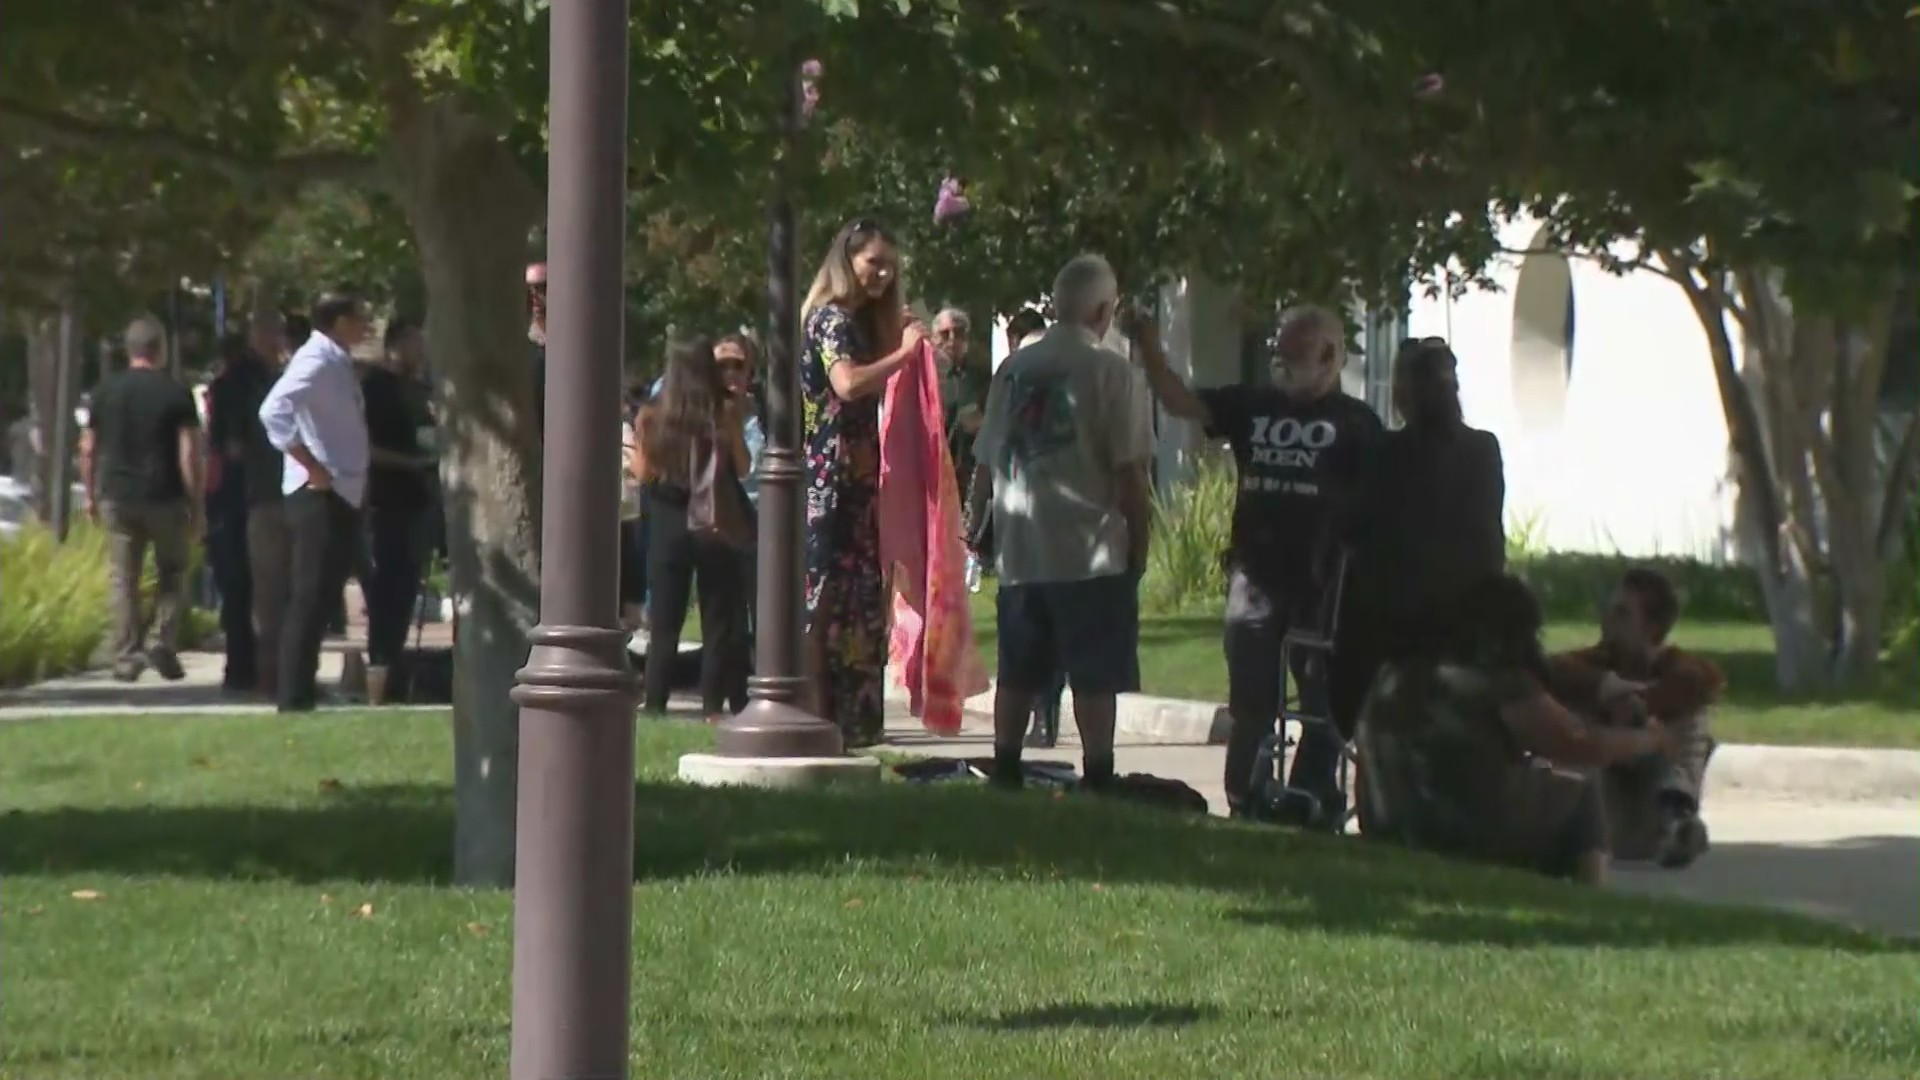 People stand outside the Godspeak Calvary Chapel in Ventura County's Newbury Park on Aug. 9, 2020. (KTLA)